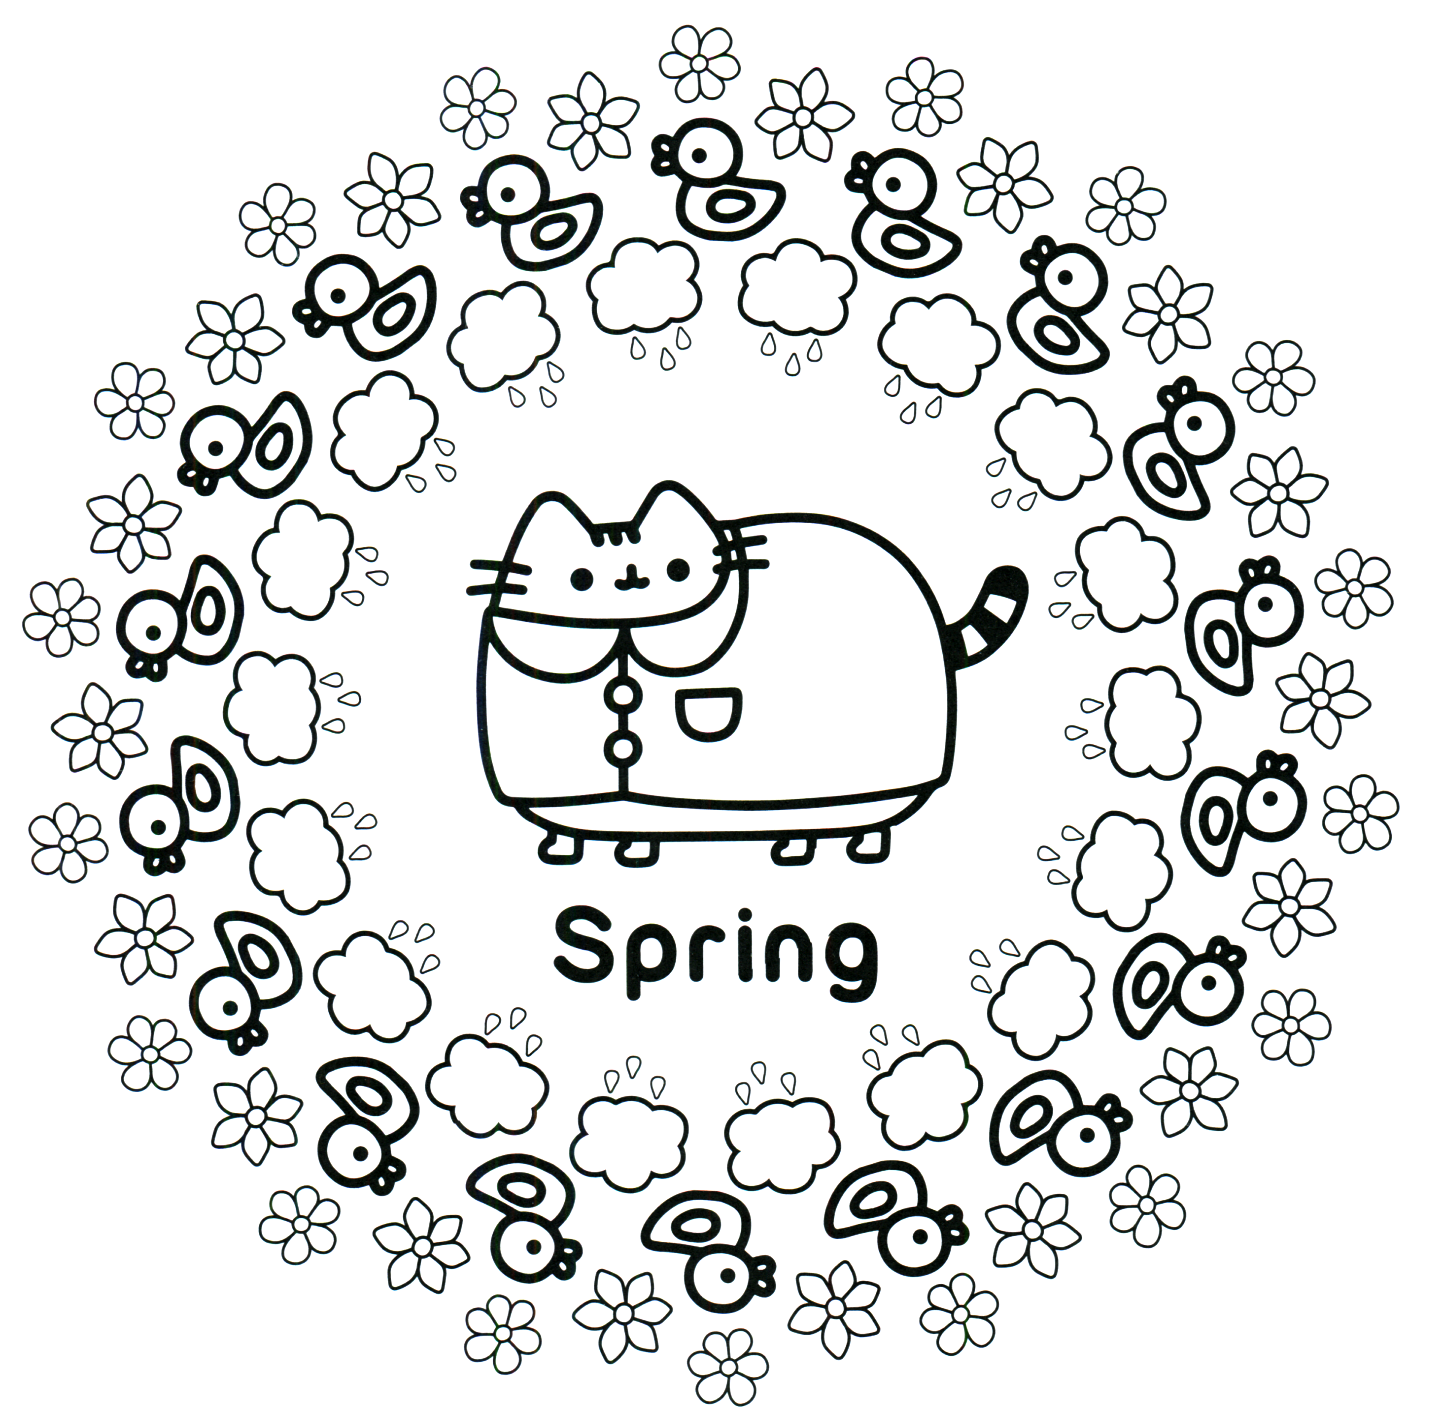 Pusheen Coloring Book Pusheen Pusheen The Cat Pusheen Coloring Pages Spring Coloring Pages Cat Coloring Page